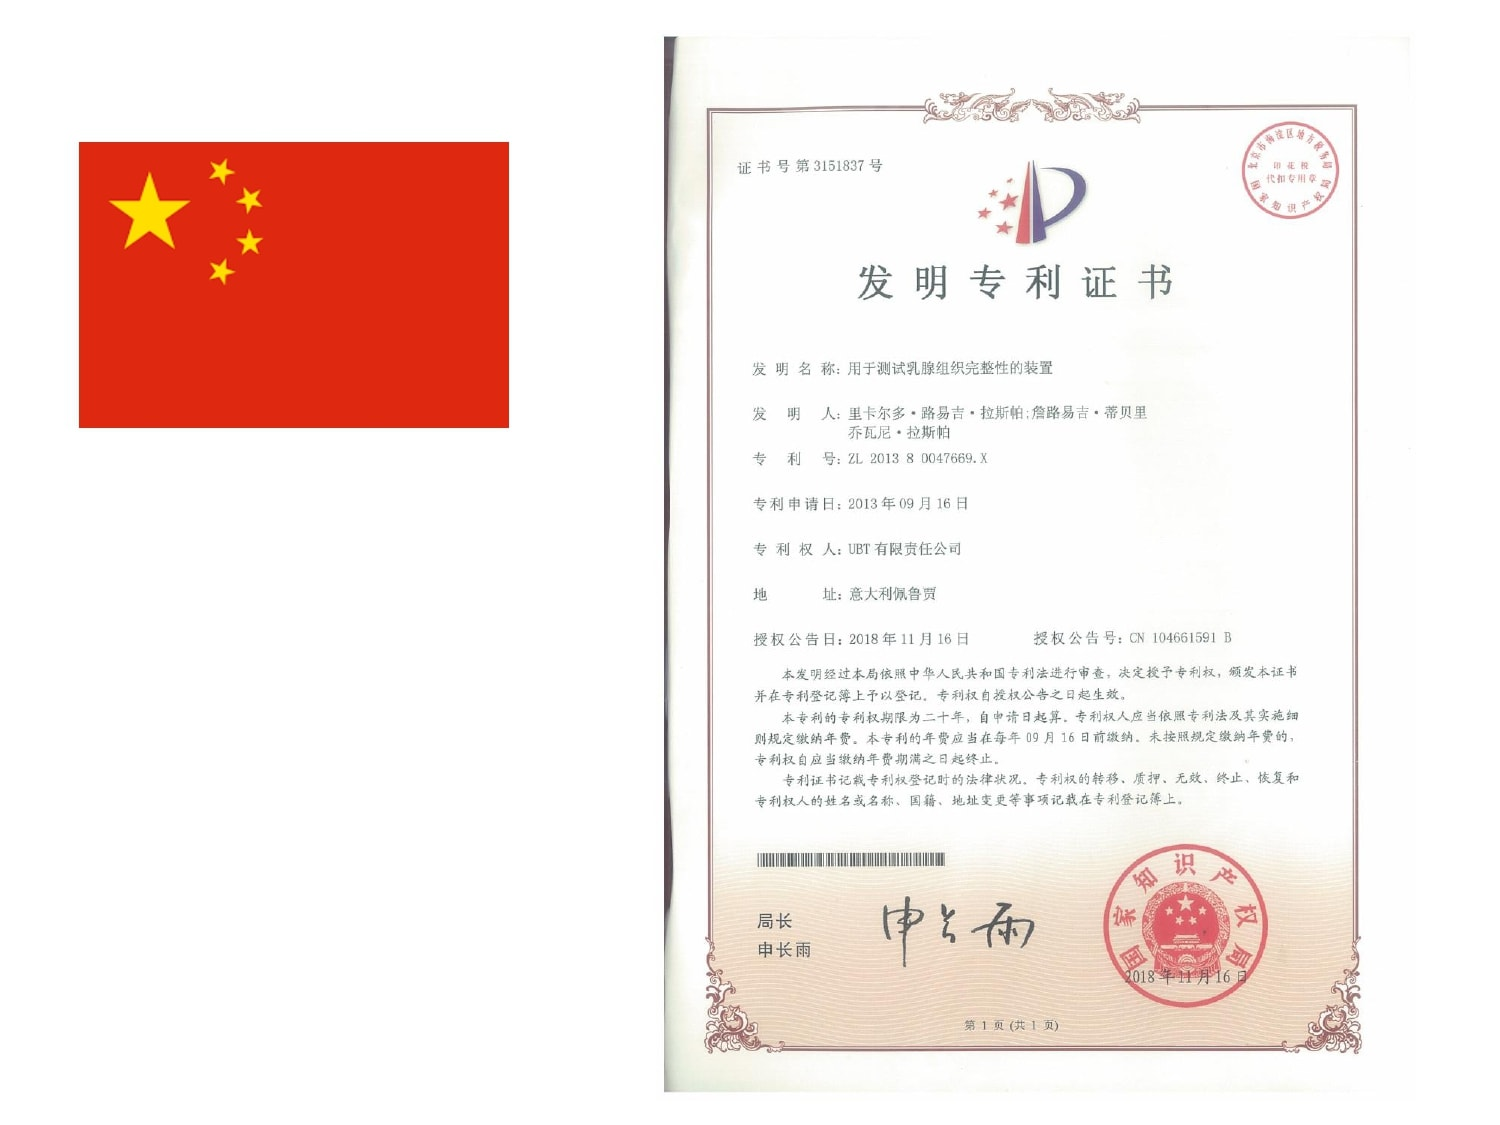 We are glad to announce that the UBT patent in China has been granted